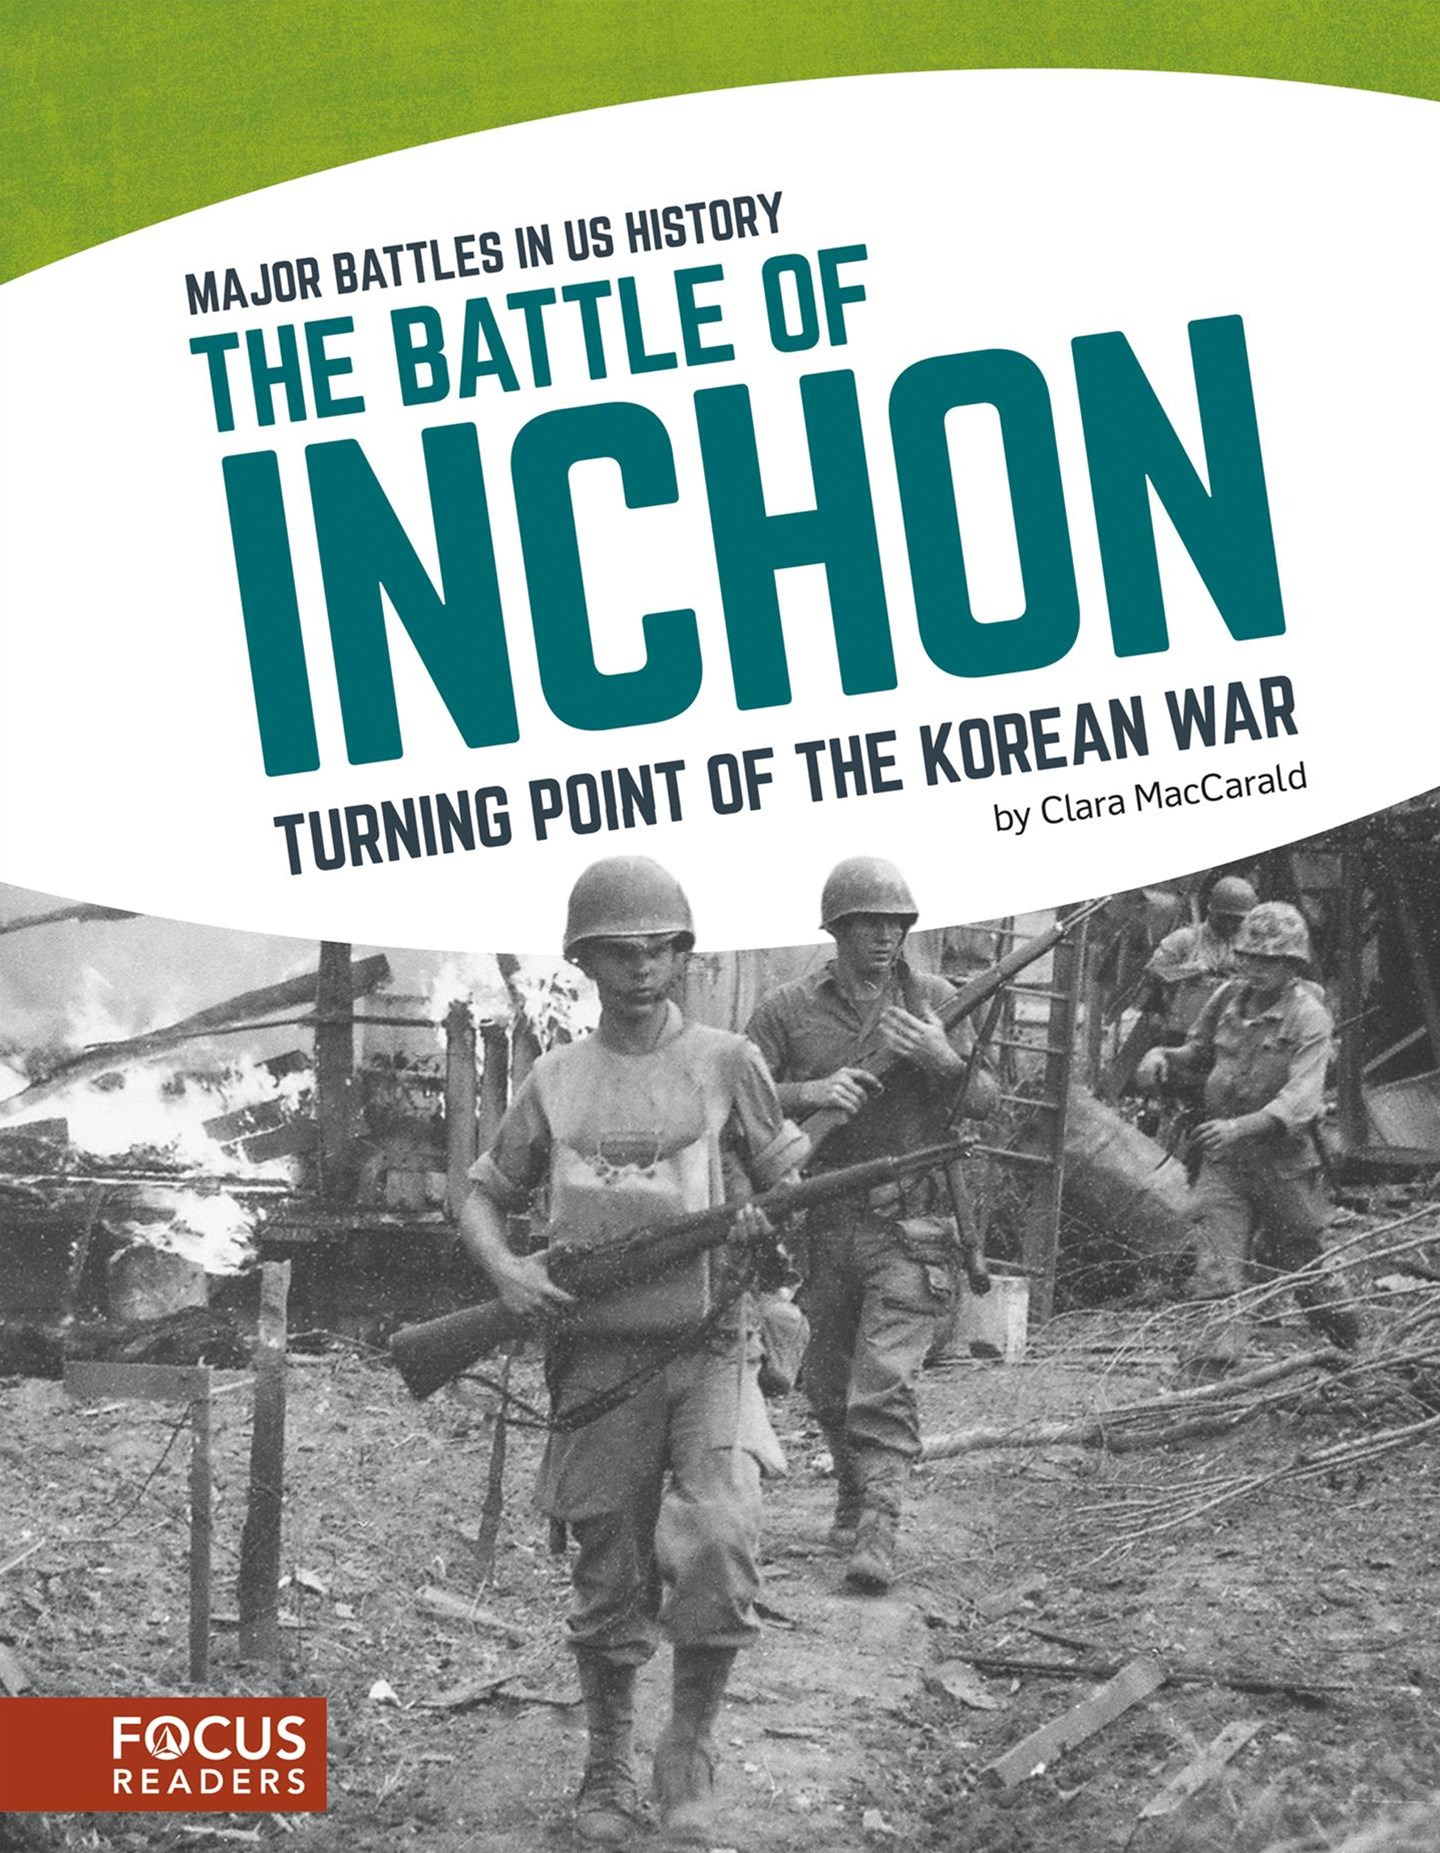 Major Battles in US History: The Battle of Inchon